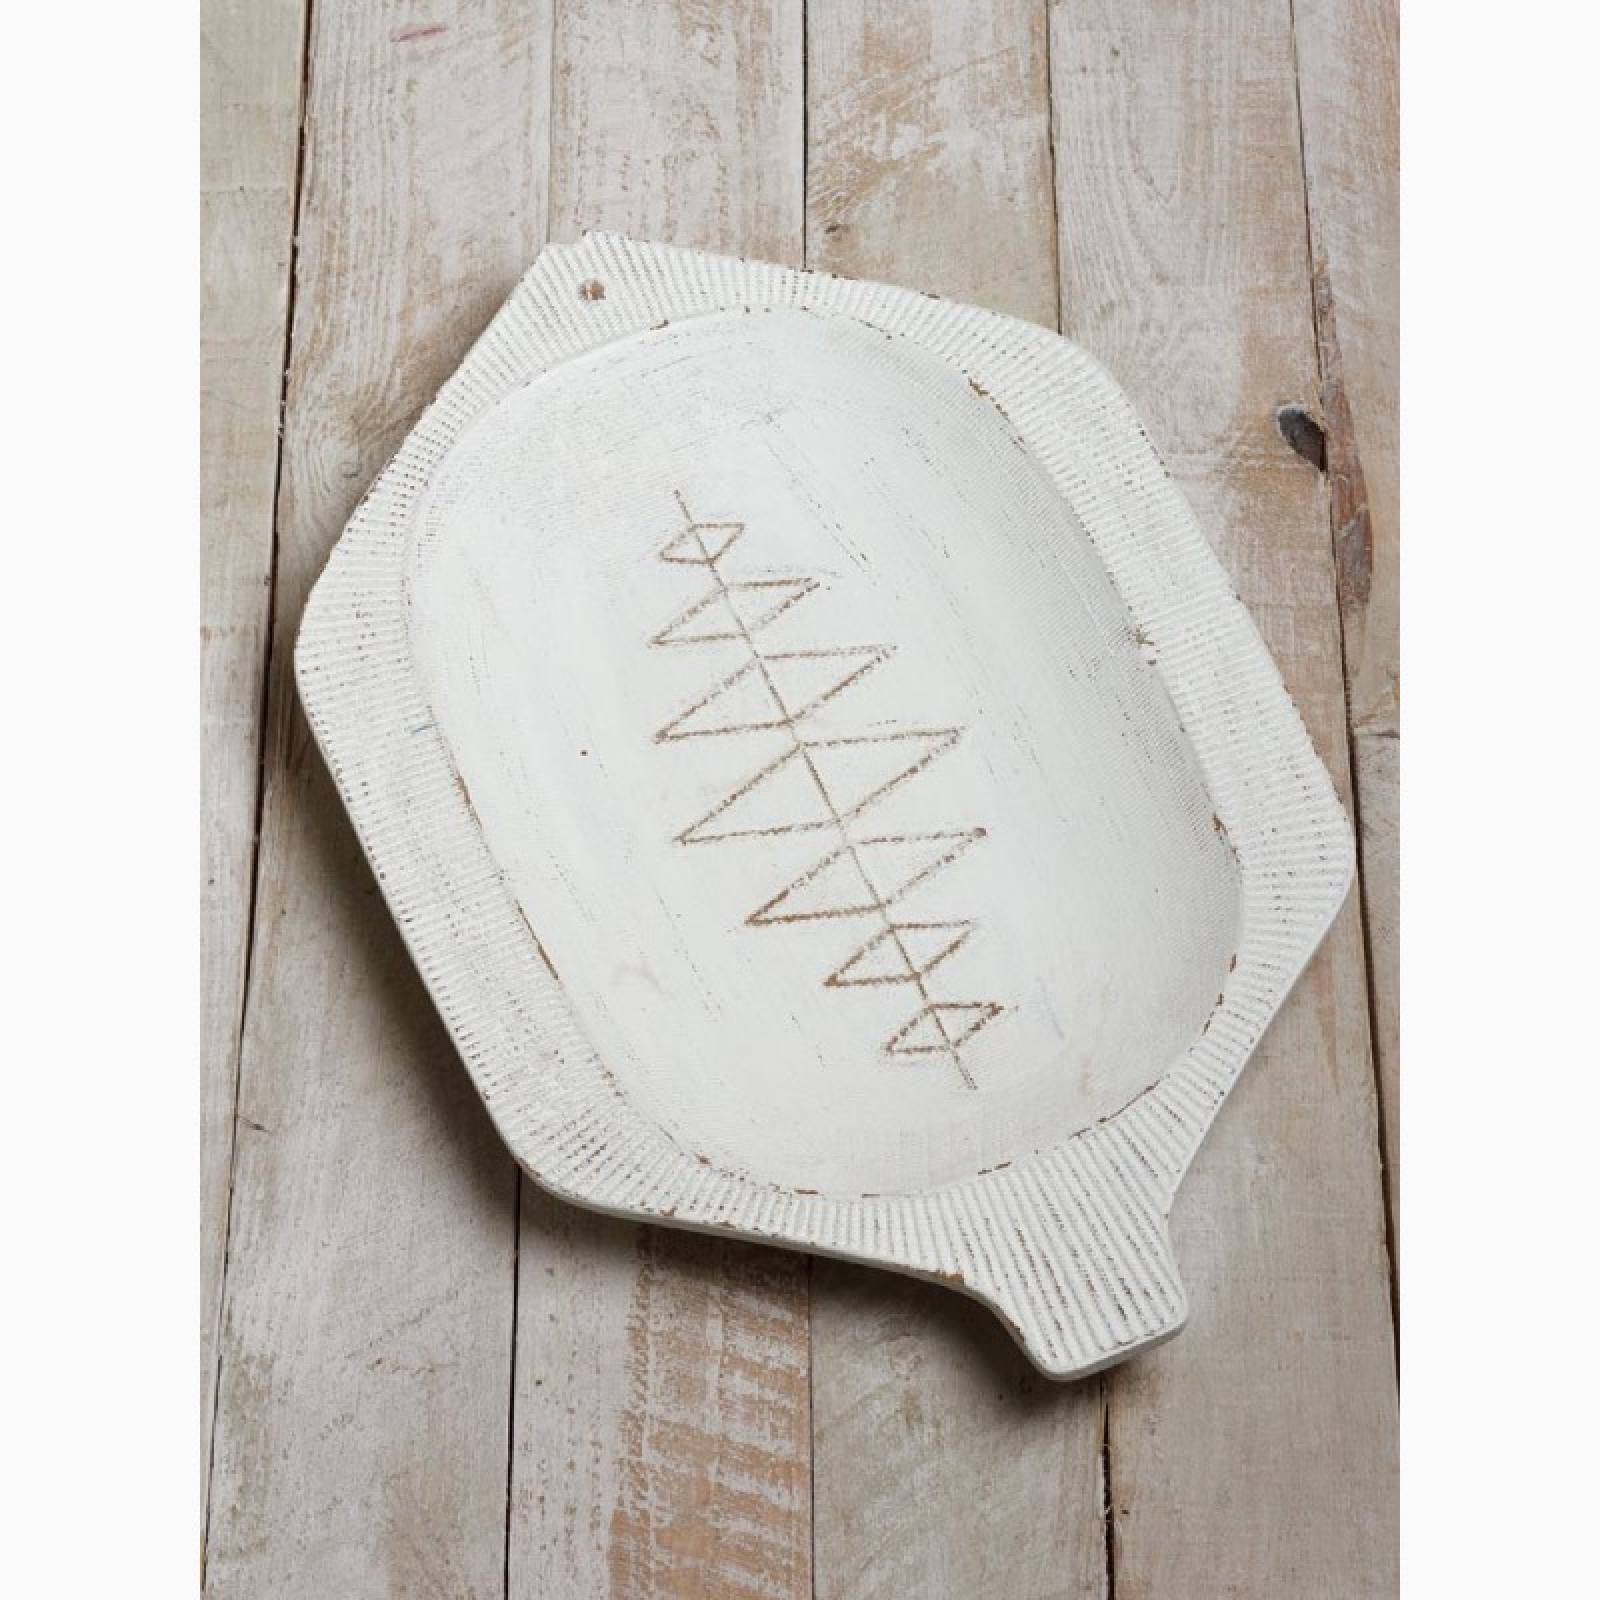 Rustic Wooden White Painted Fish Platter